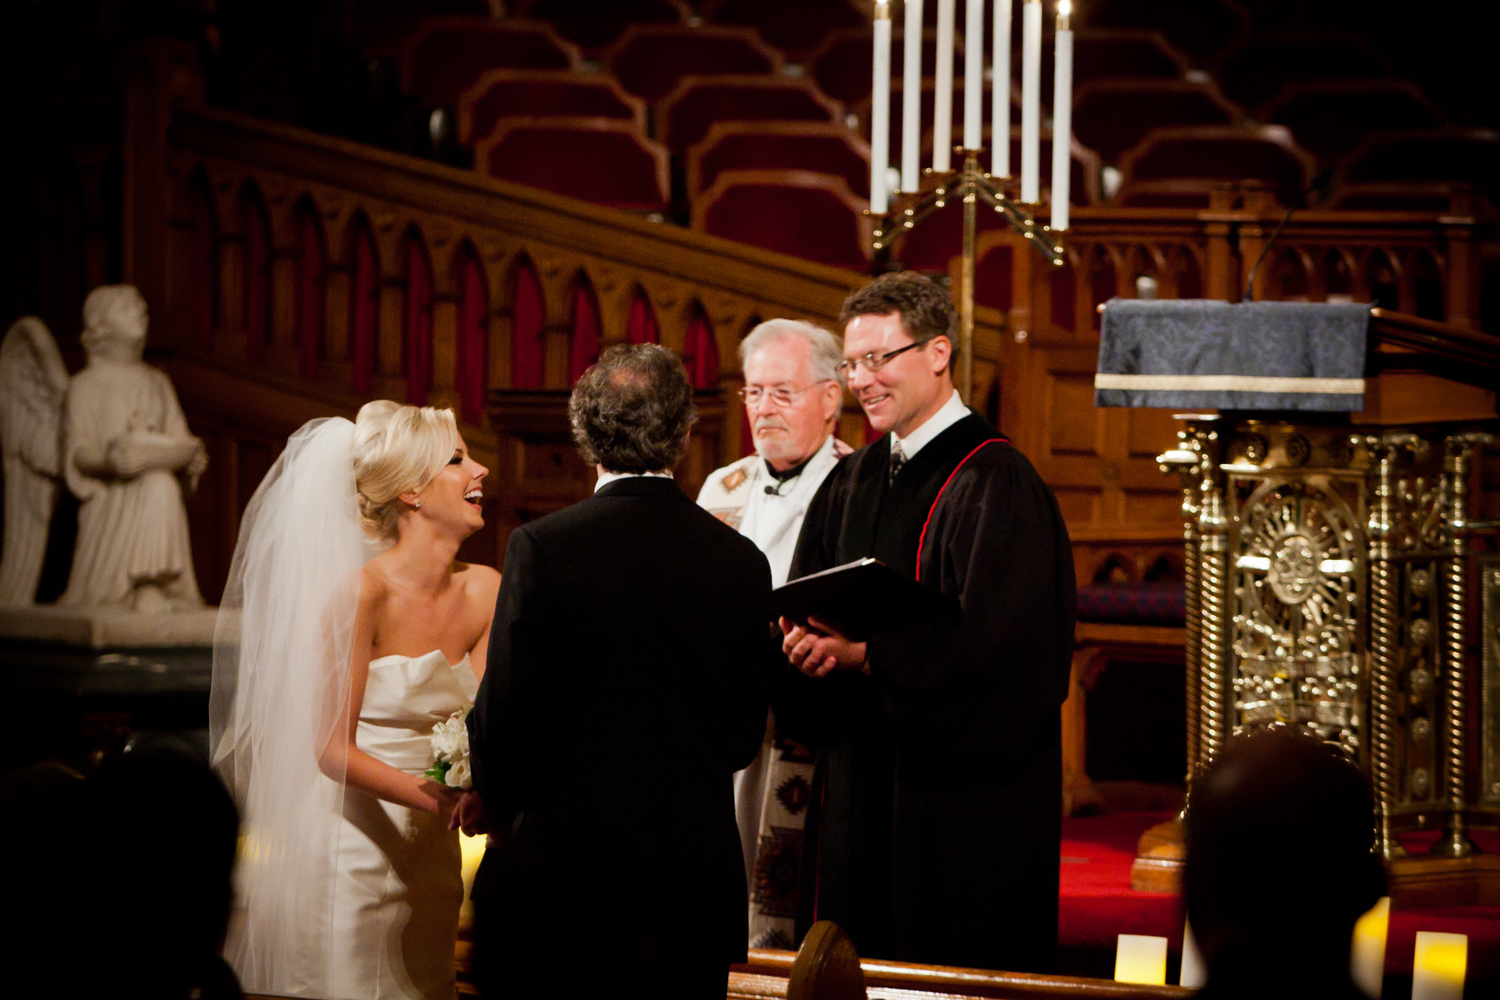 Four_Seasons_Denver_Wedding_044.JPG